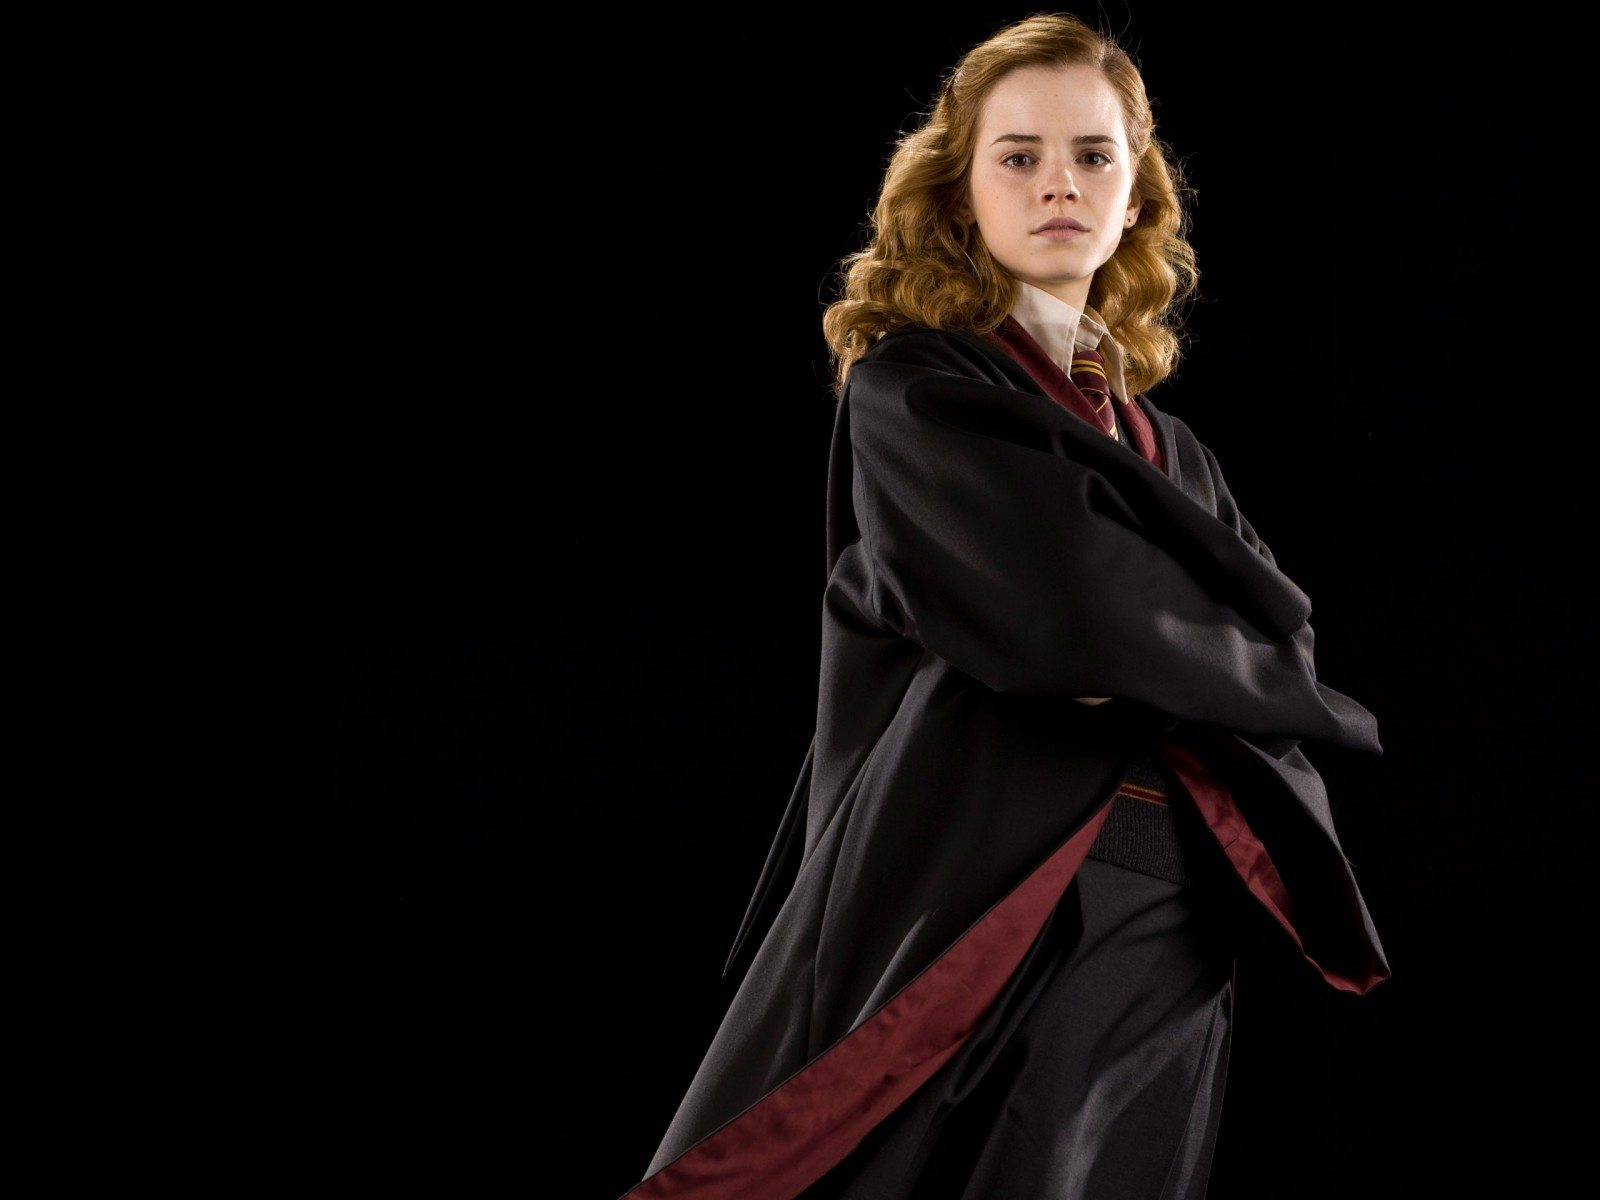 picture How to Study Like Hermione Granger